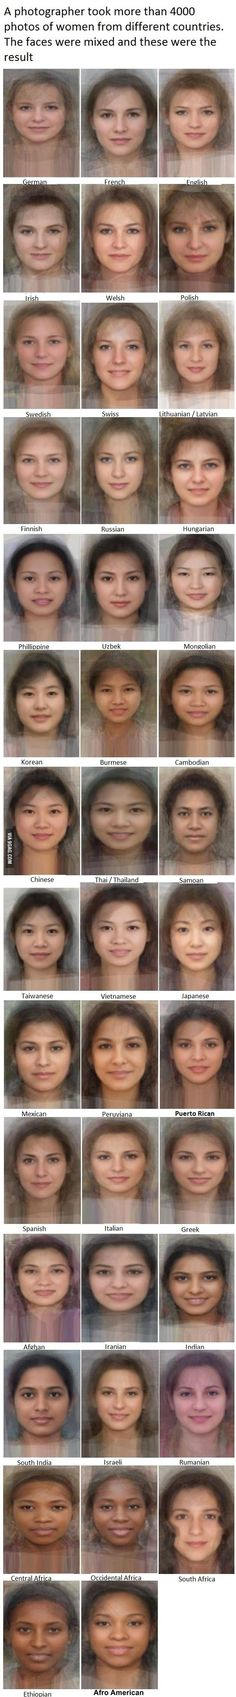 Average face from women from different countries this is so cool